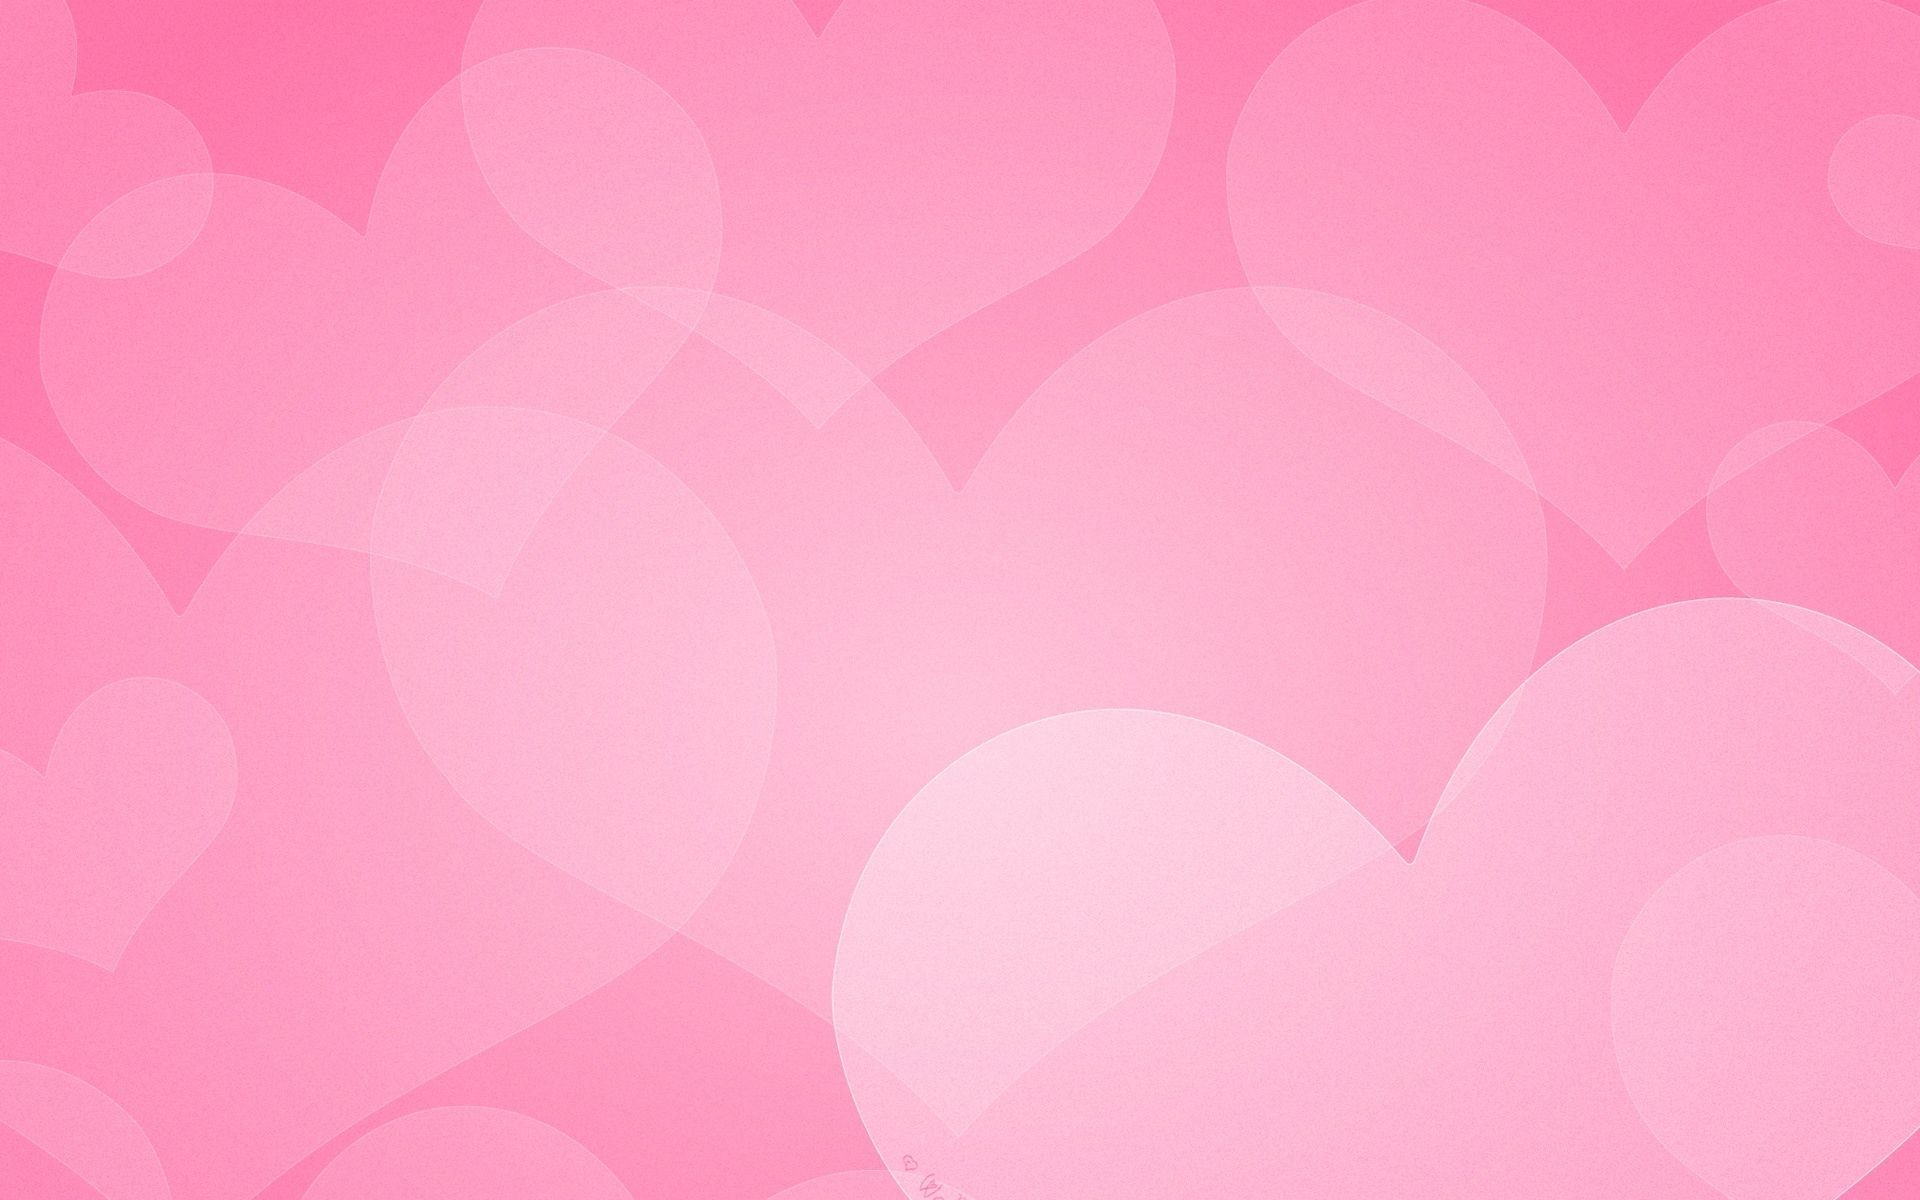 1920x1200, Wallpaper - Pink Background With Hearts Hd - HD Wallpaper